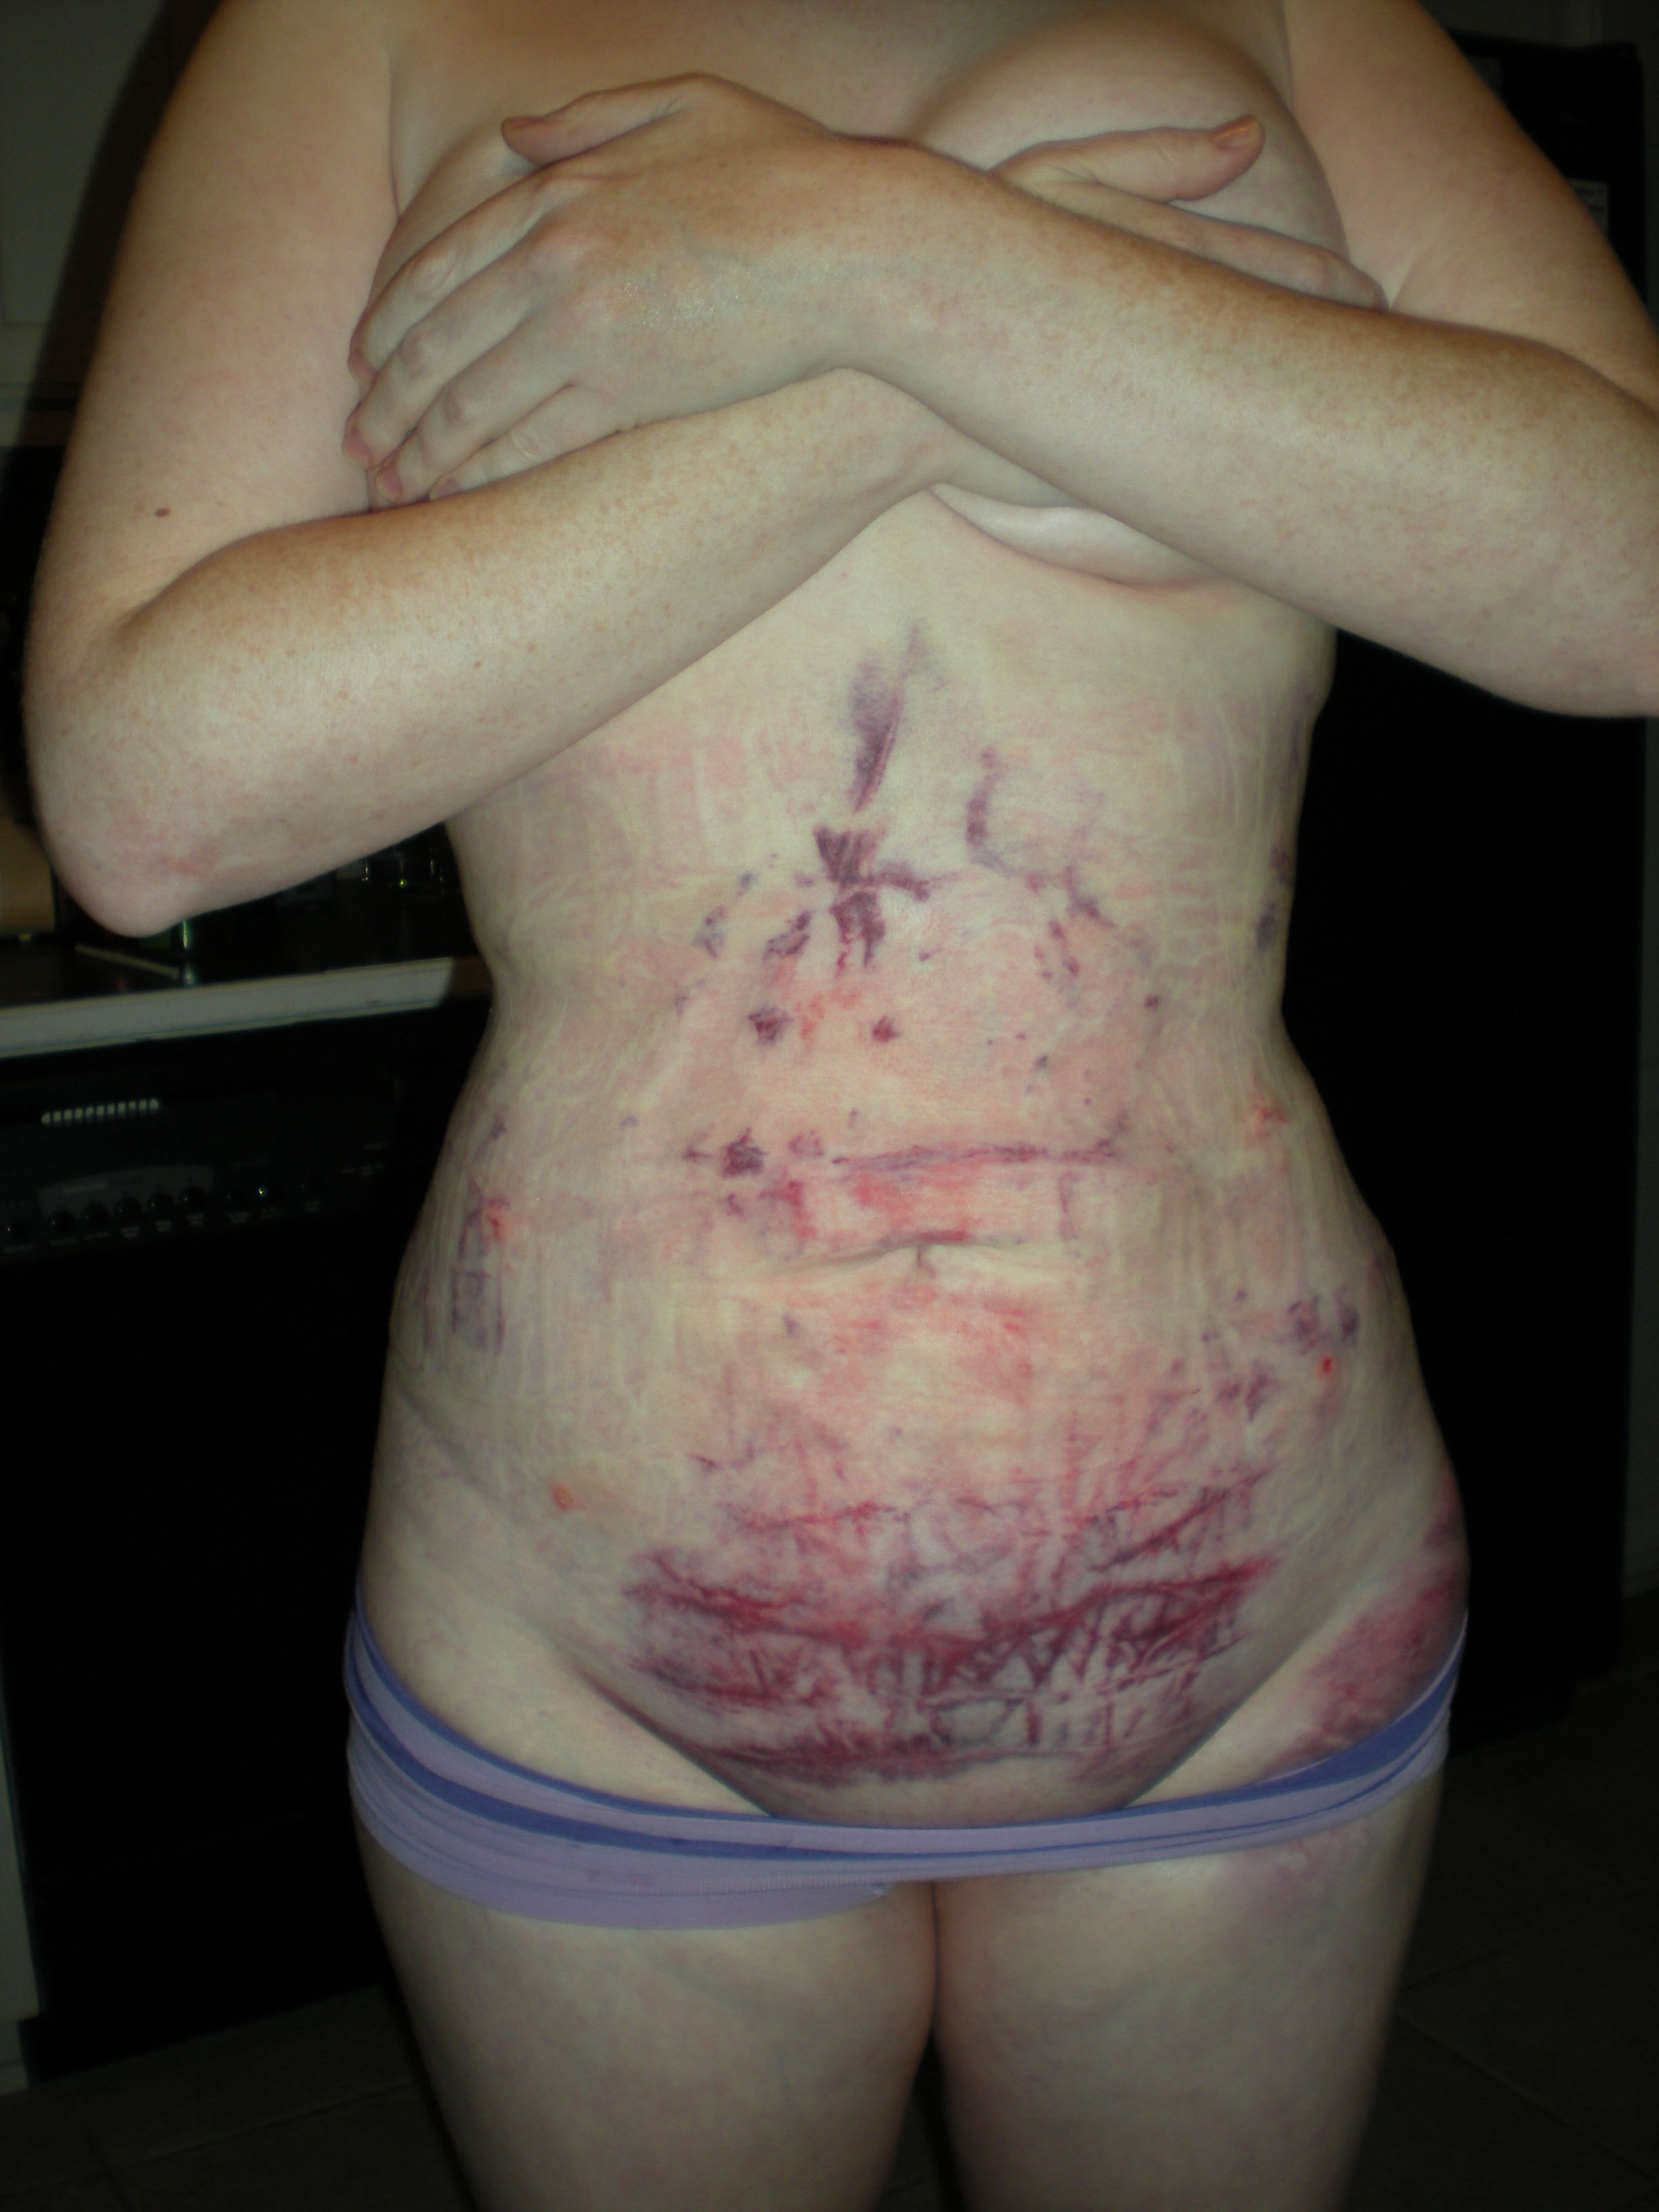 Post Op Vaginoplasty http://www.makemeheal.com/pictures/liposuction/post-op-front-24-hours-p84215